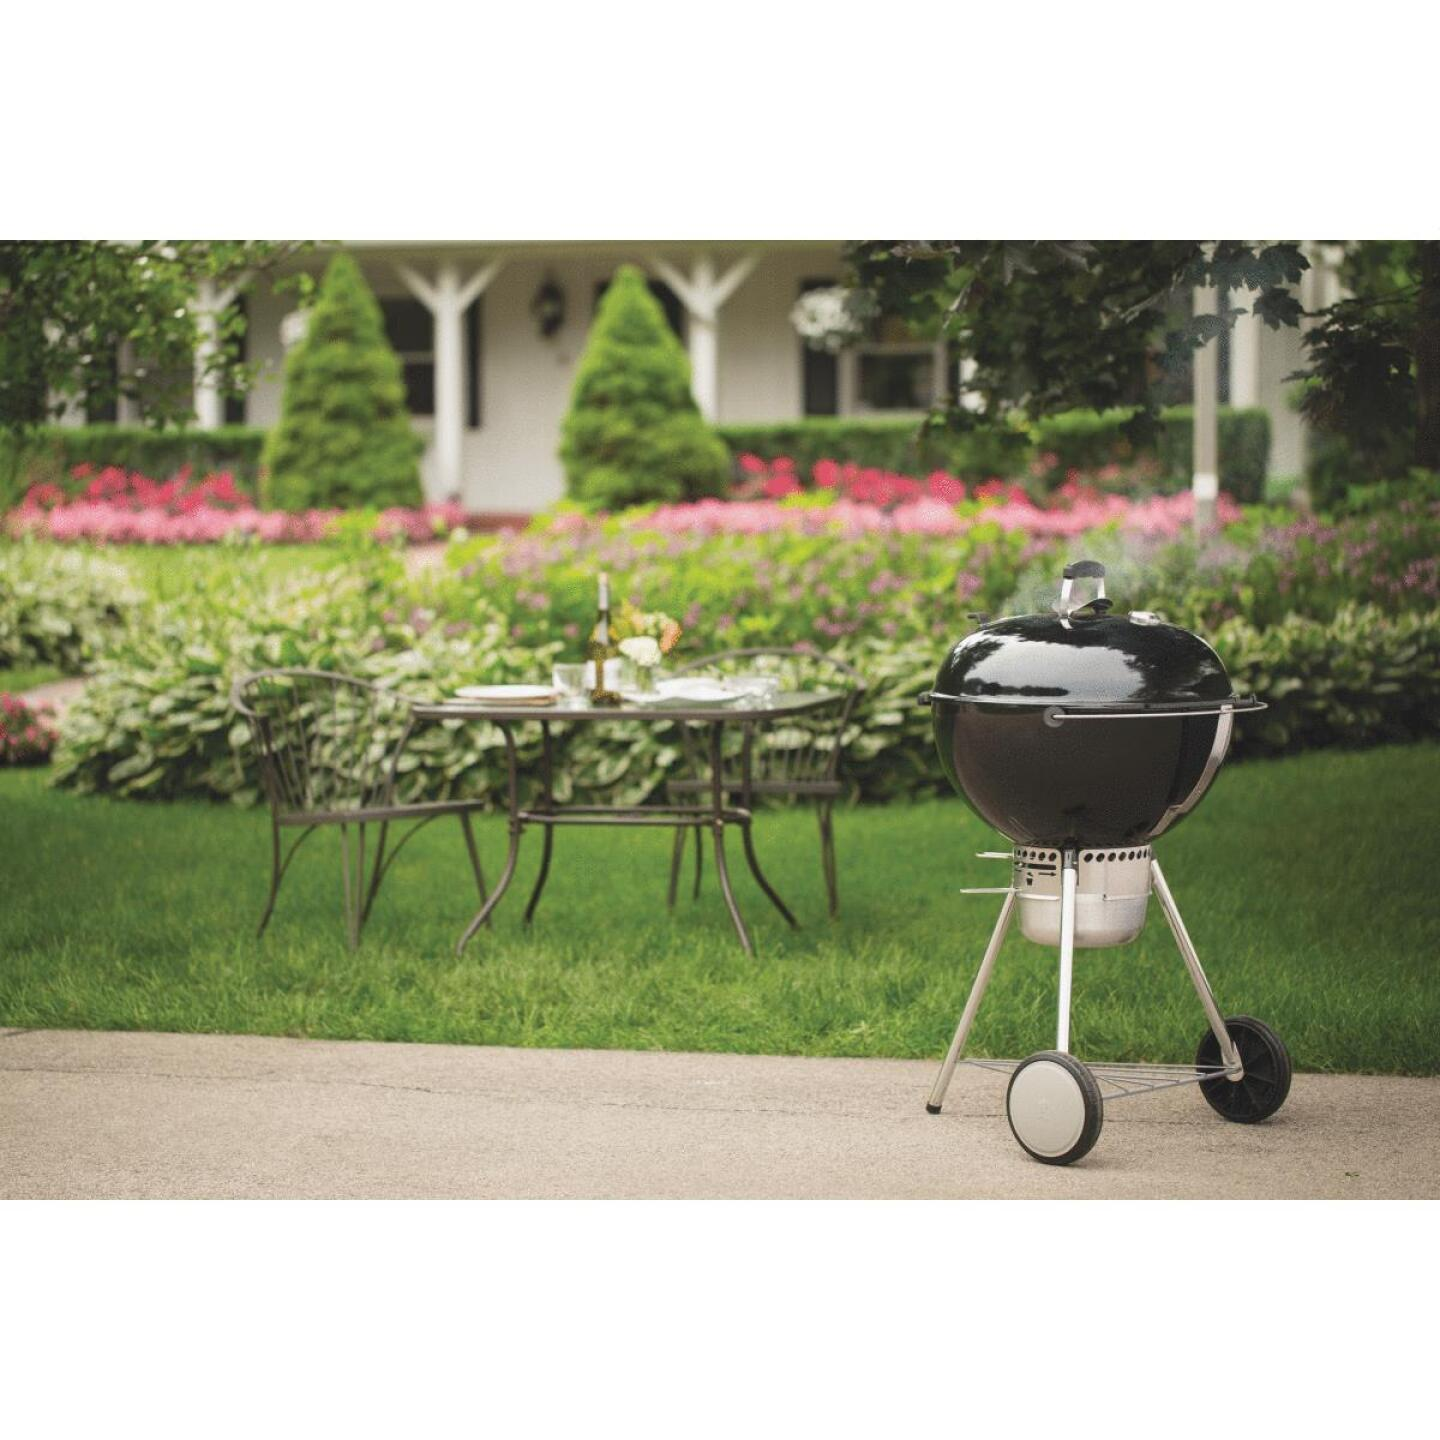 Weber Master-Touch 22 In. Dia. Black Charcoal Grill Image 3